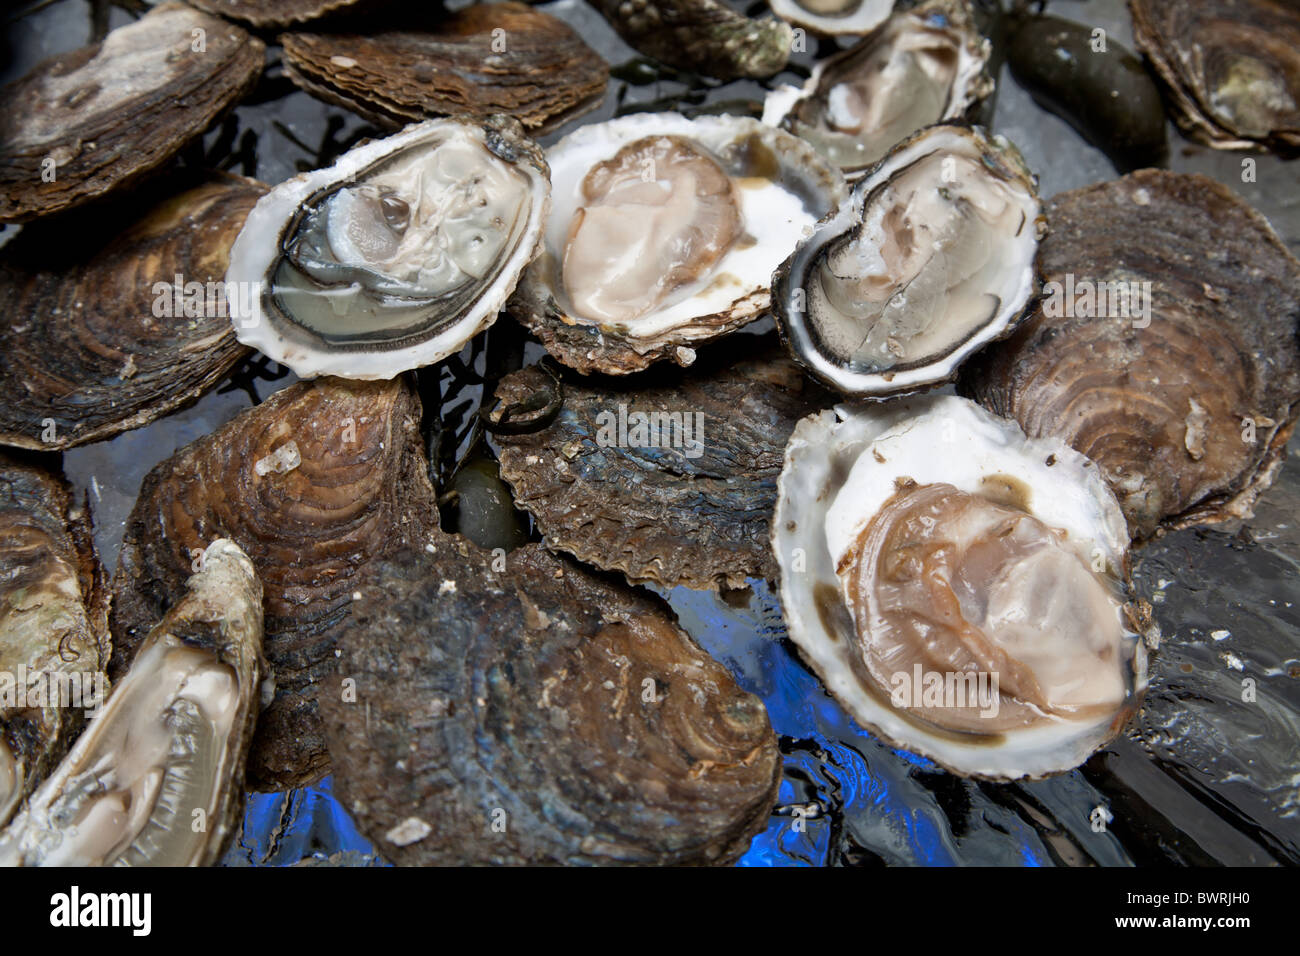 Fresh oysters are laid out on the ice. - Stock Image